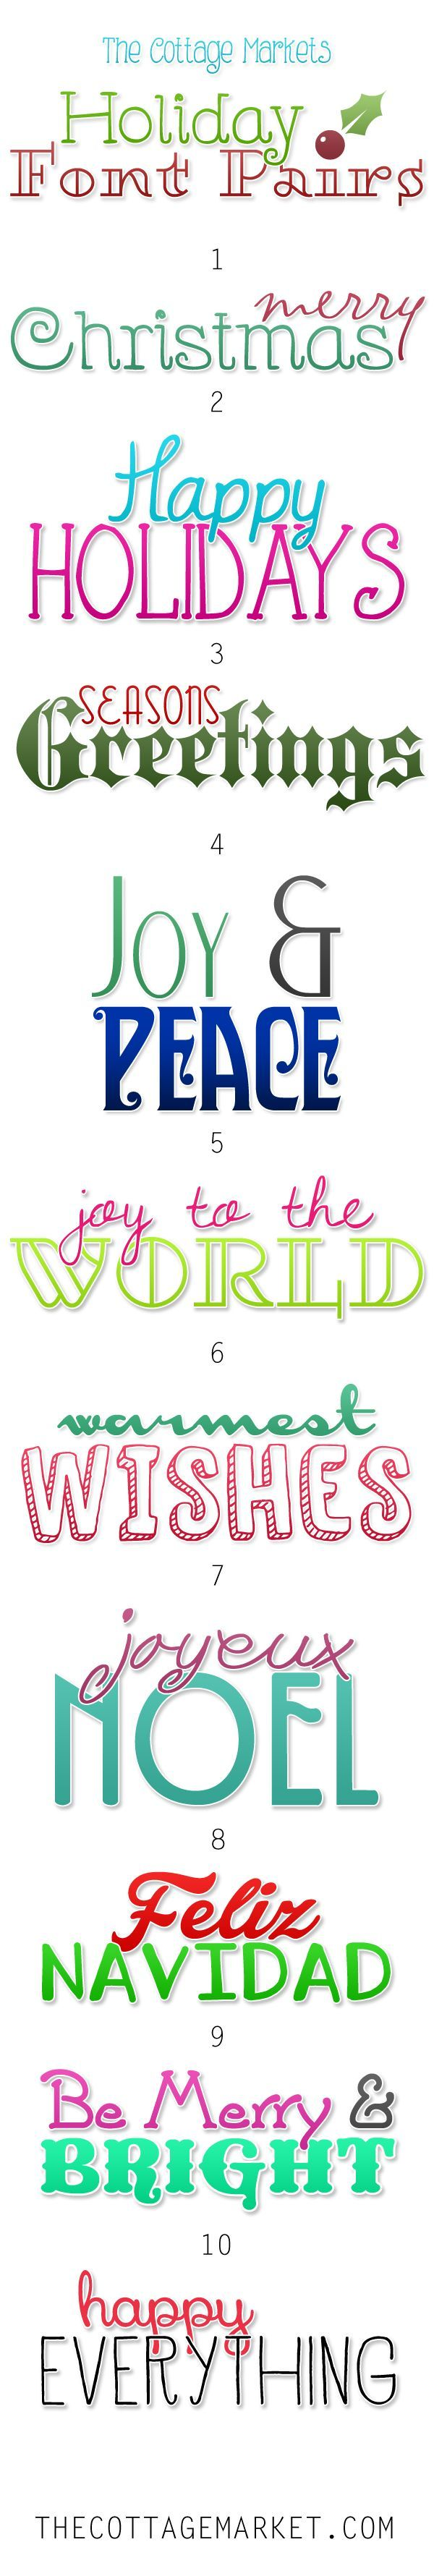 Free Fonts Holiday Pairs - The Cottage Market #FreeFonts, #FreeFontCombos, #FreeFontPairs, #FreeHolidayFontPairs, #FreeFontHolidayPairs